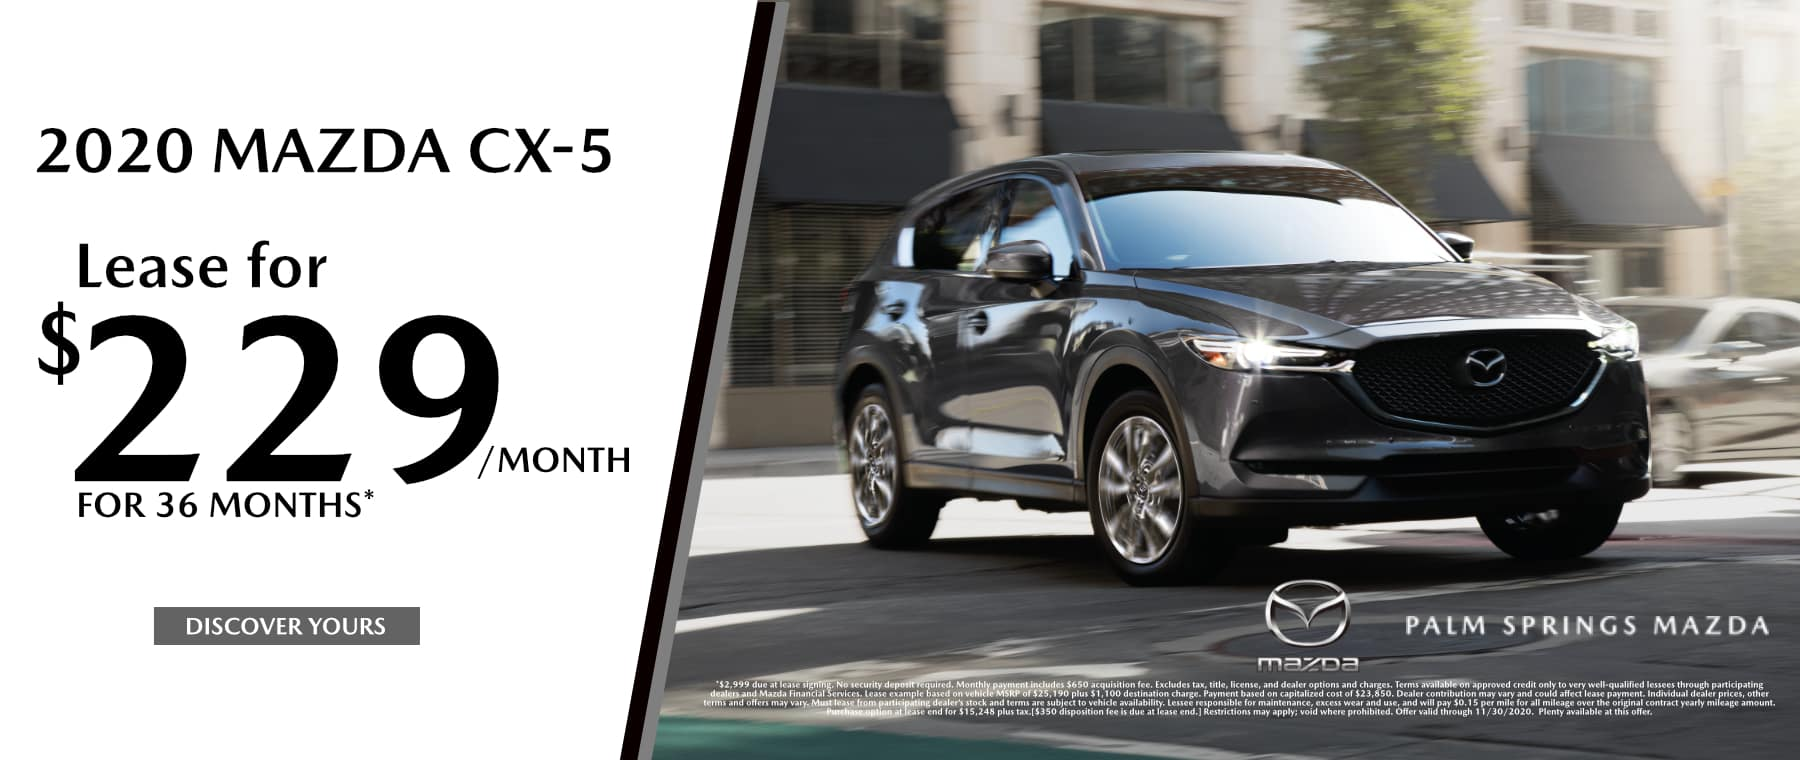 November-2020 CX5 Palm Springs Mazda